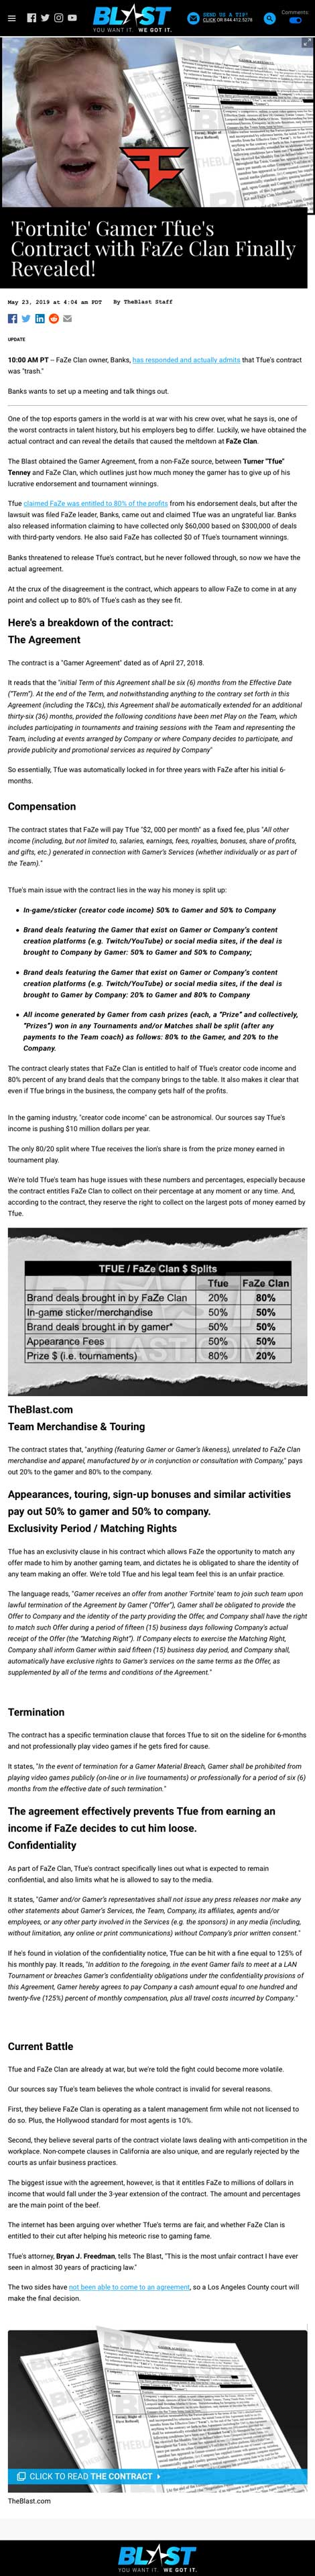 'Fortnite' Gamer Tfue's Contract with FaZe Clan Finally Revealed! - article by TheBlast.com